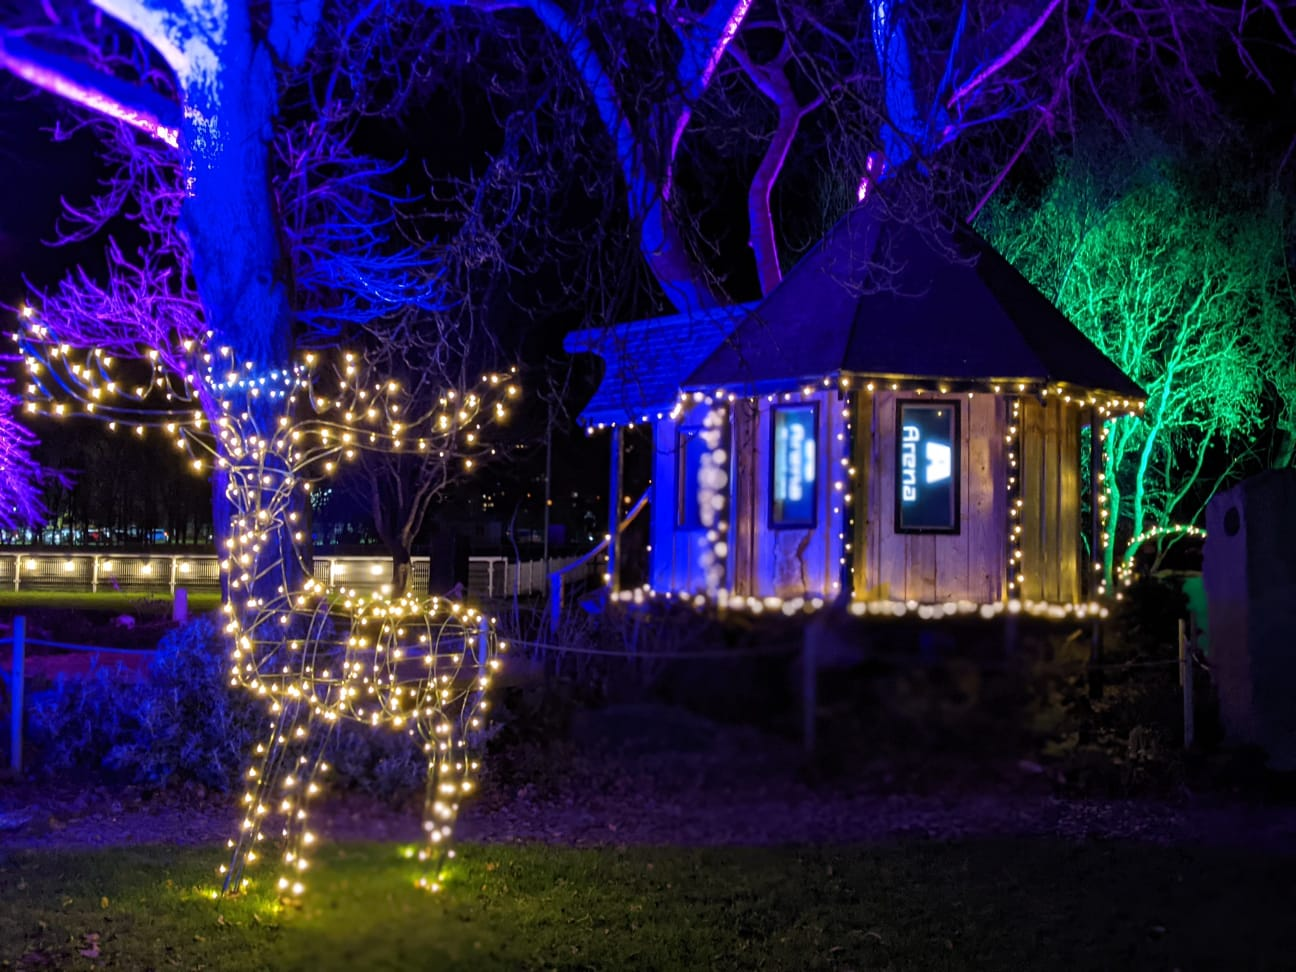 lit up reindeer and house